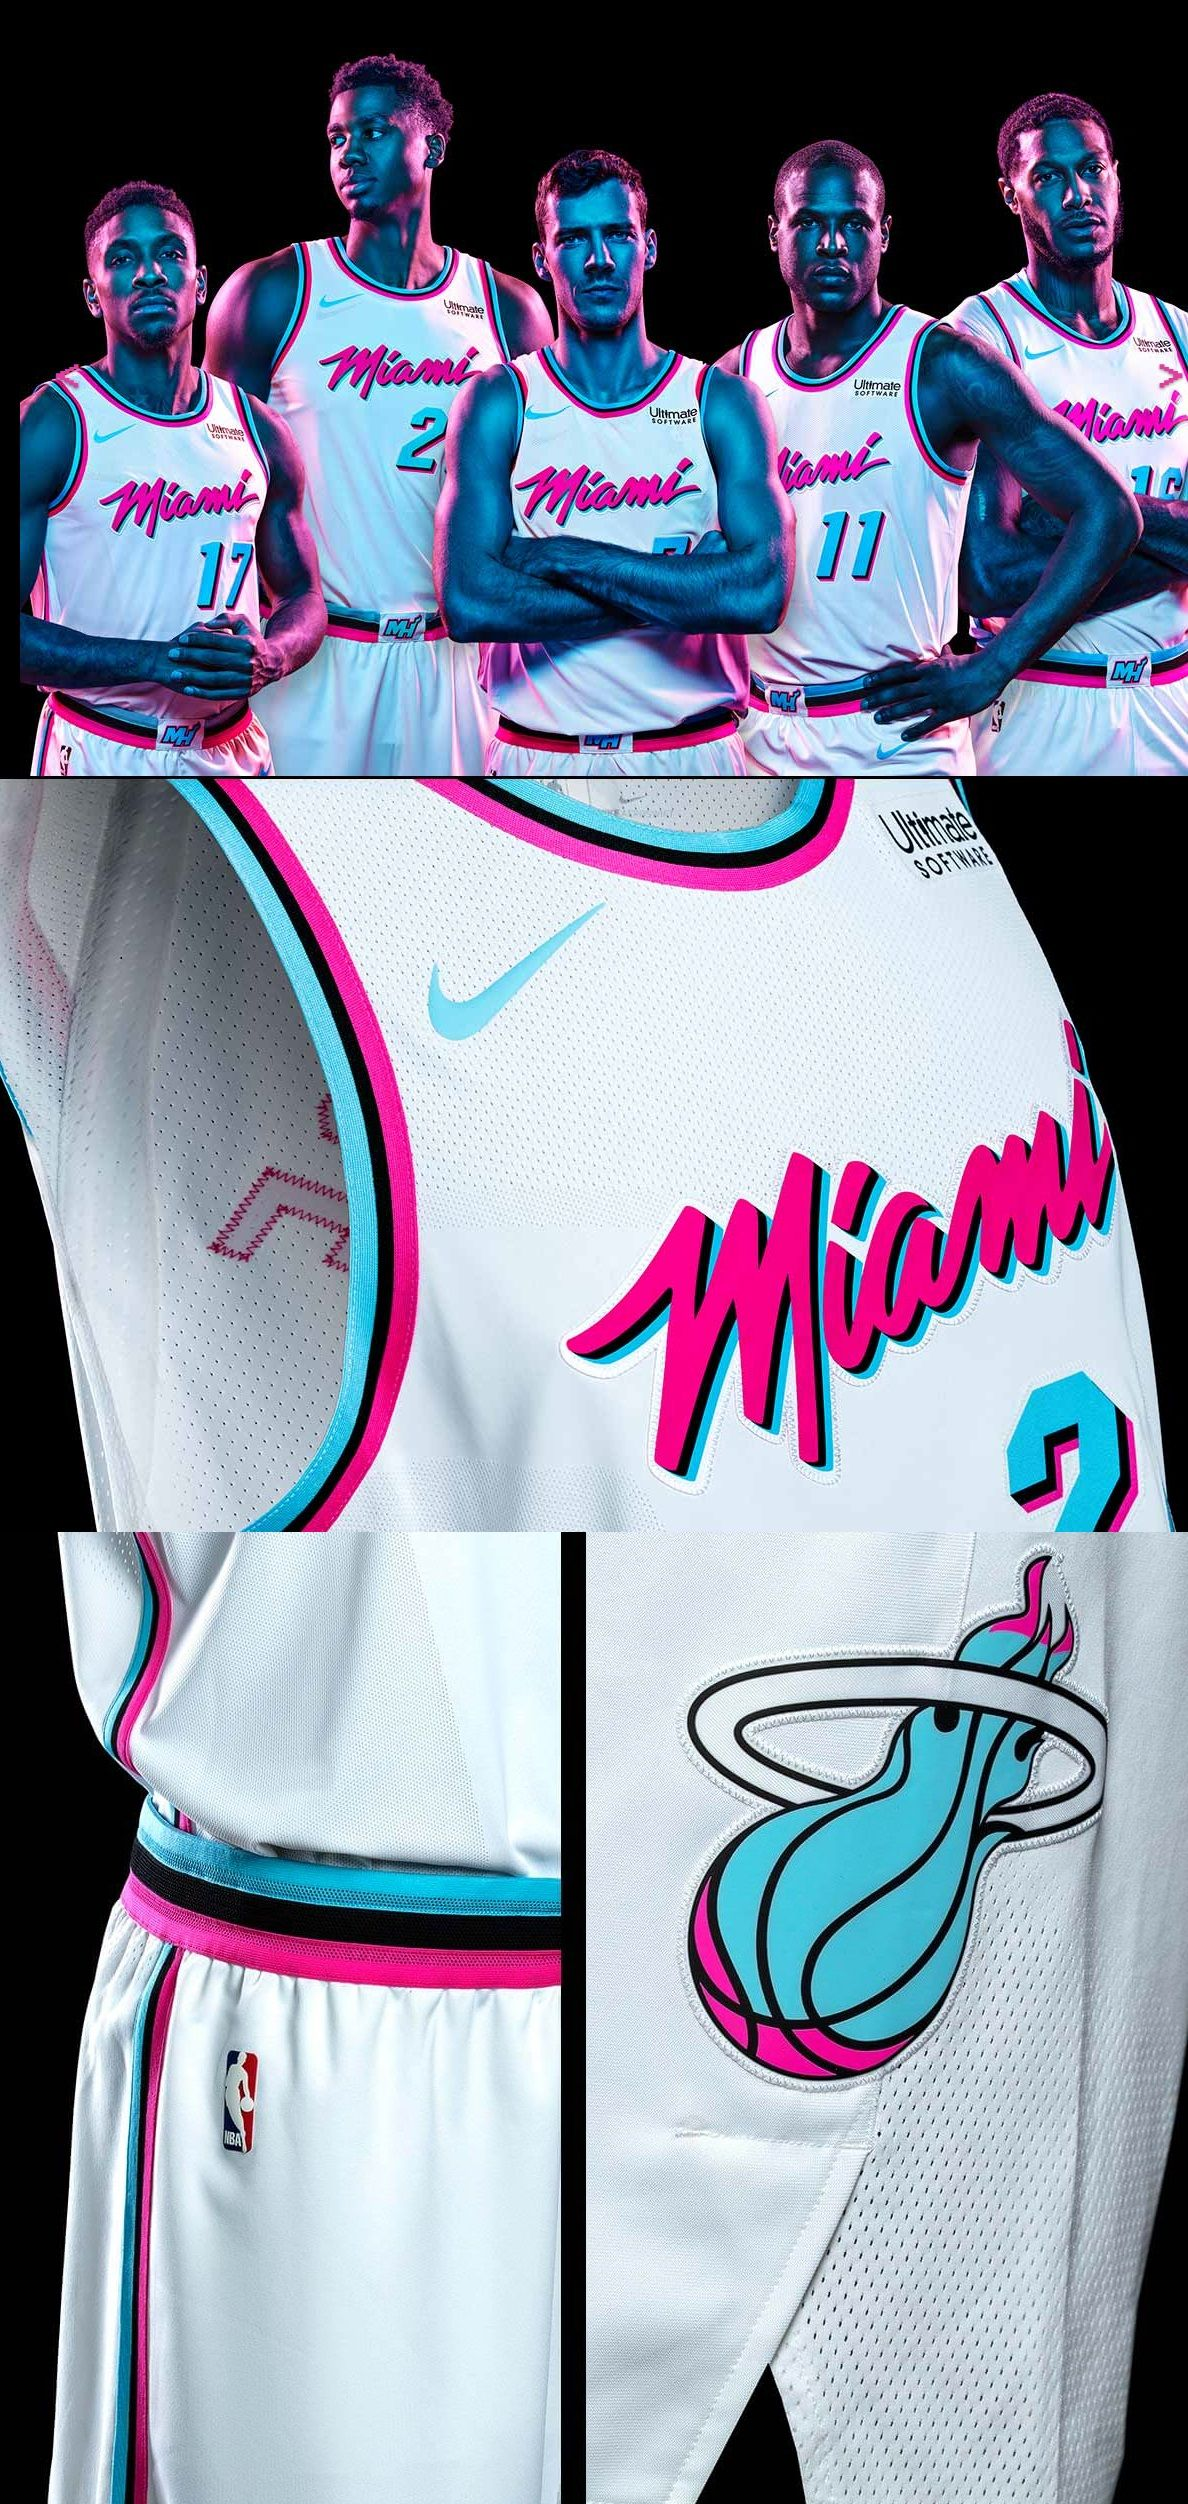 a1bb9b23f Miami Heat  Vice  City Edition Unis  MiamiHeat  MiamiCulture  NBA ...